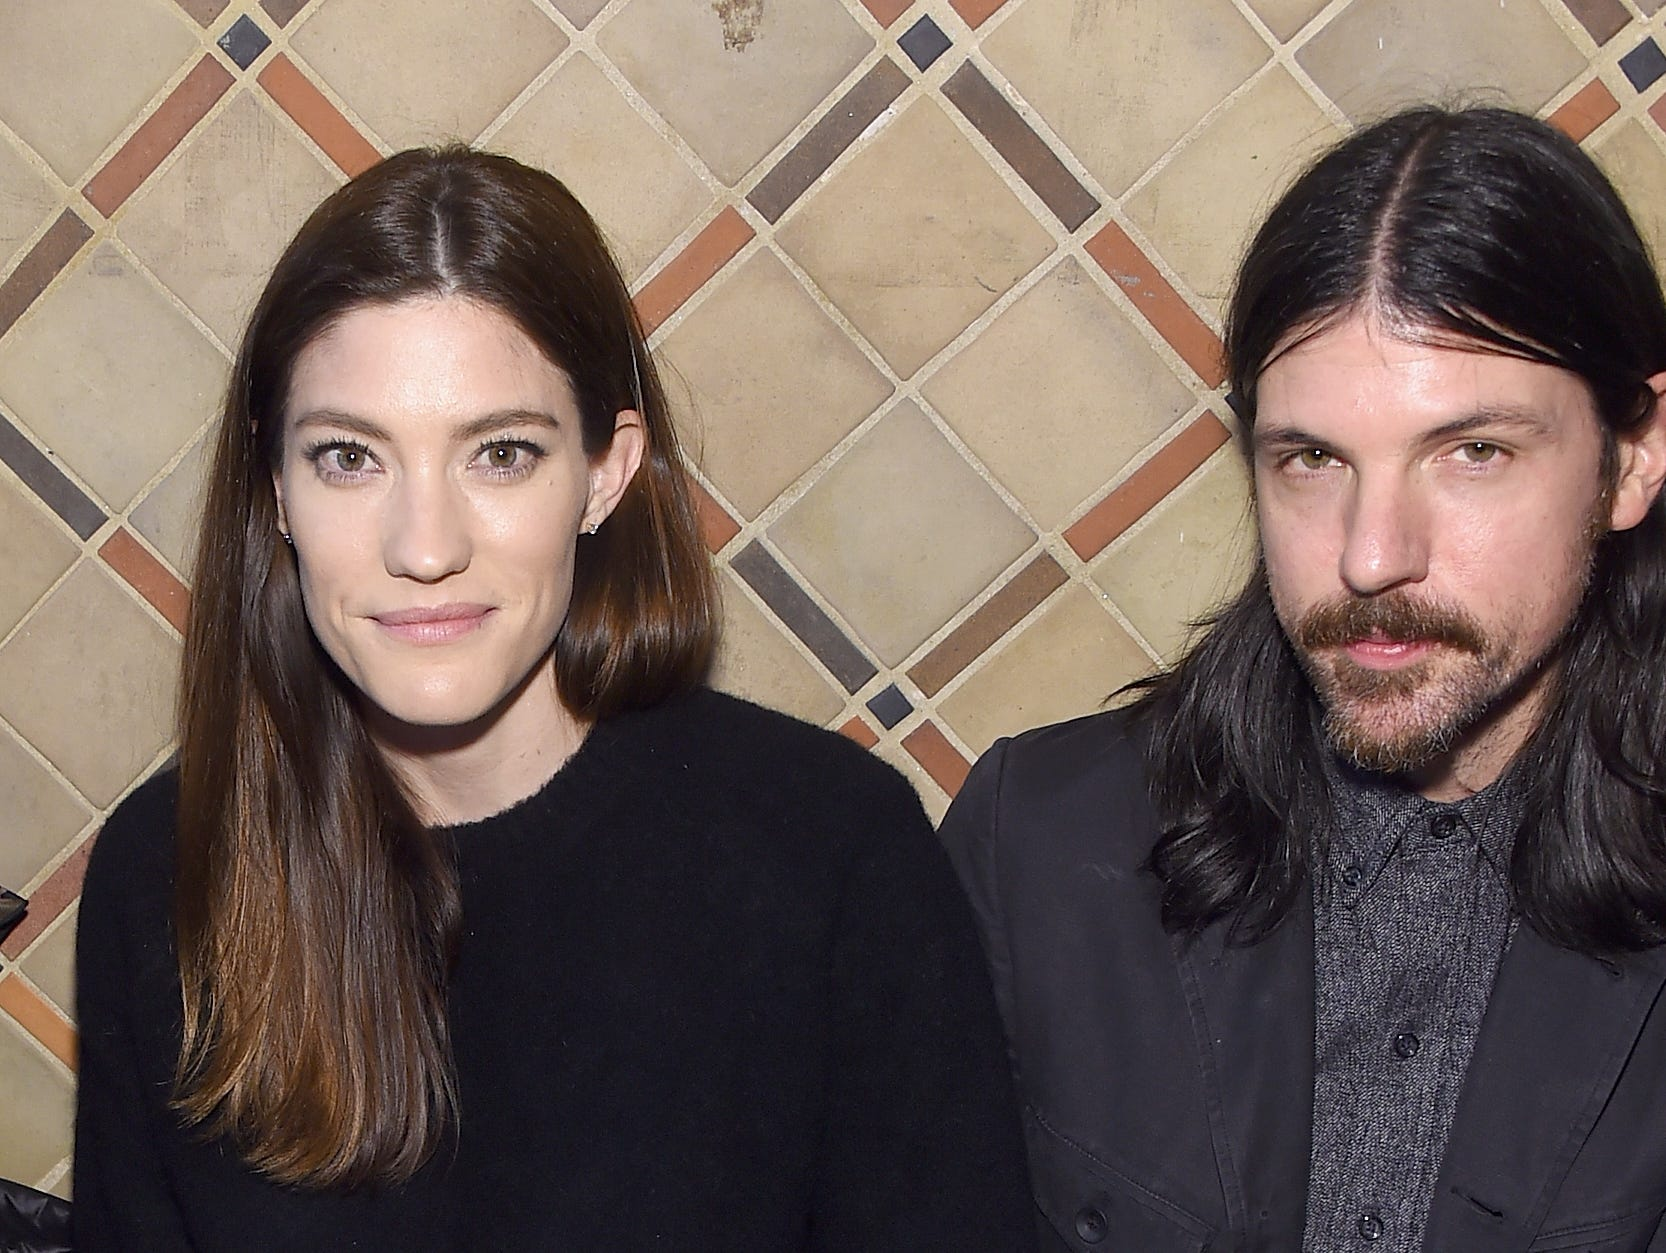 NEW YORK, NY - FEBRUARY 12:  Jennifer Carpenter(L) and Seth Avett attend the Cynthia Rowley front row during New York Fashion Week: The Shows on February 12, 2019 in New York City.  (Photo by Jamie McCarthy/Getty Images for NYFW: The Shows) ORG XMIT: 775290970 ORIG FILE ID: 1124445273